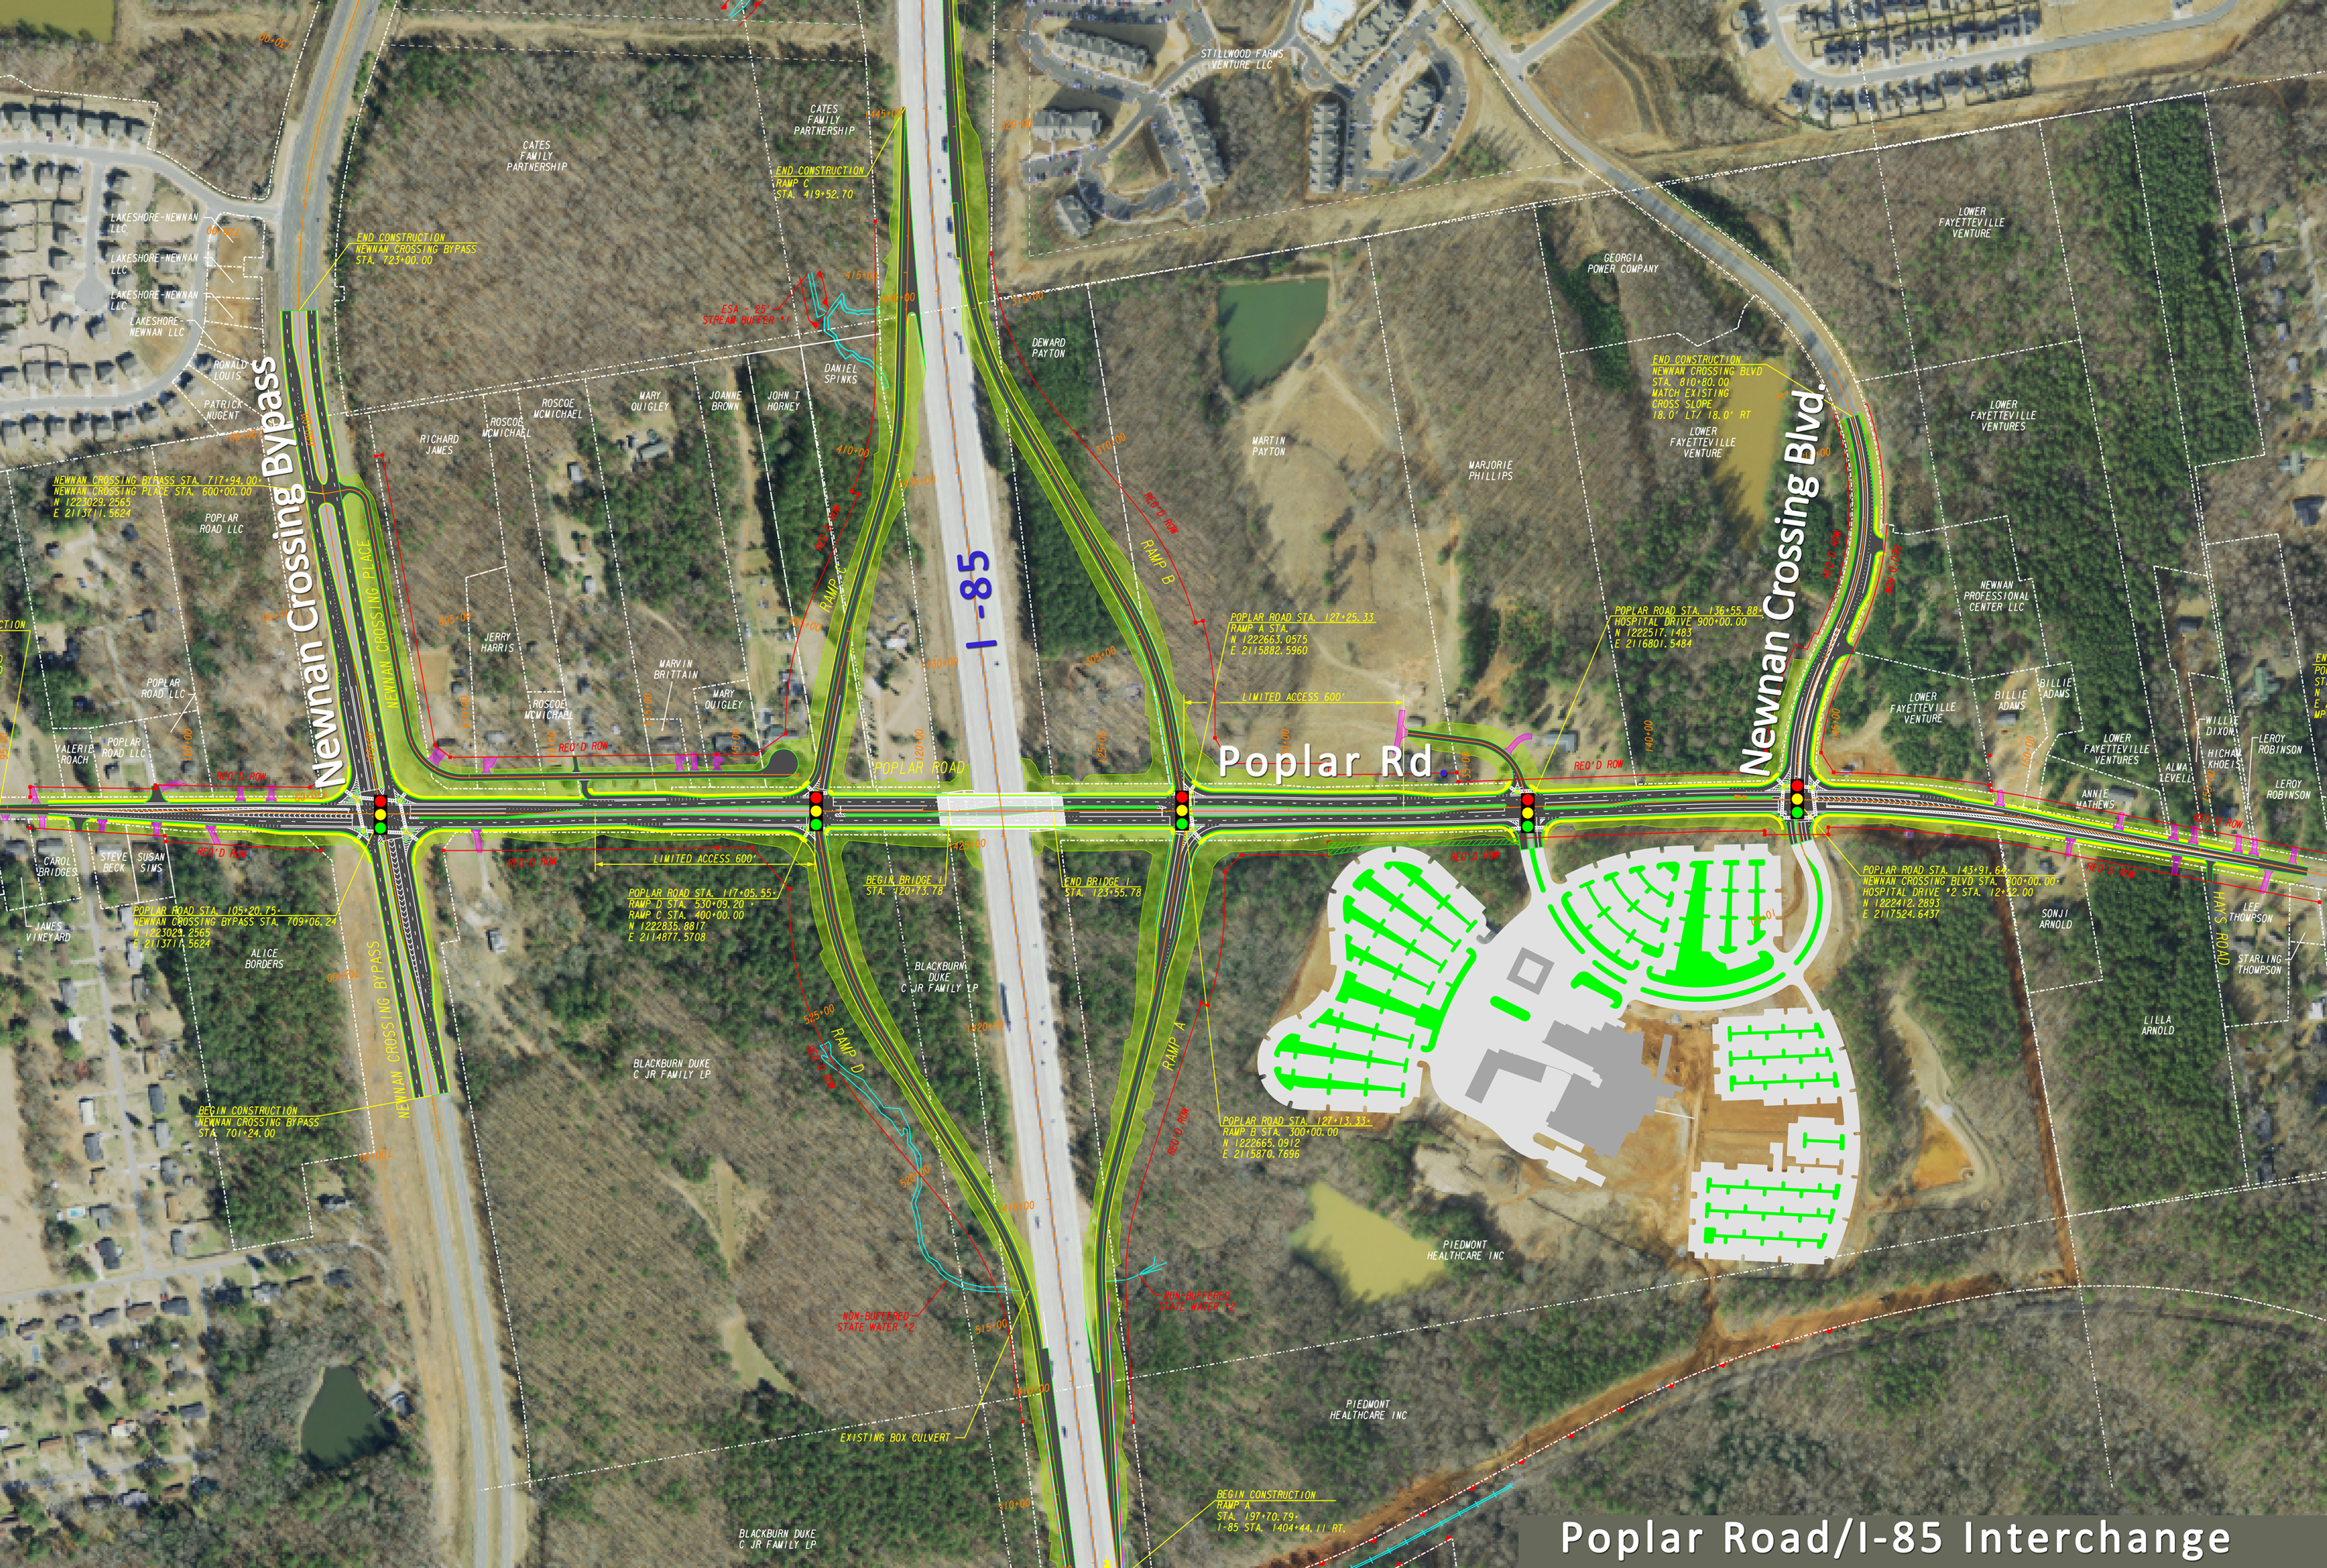 Overlay for future Poplar Road interchange